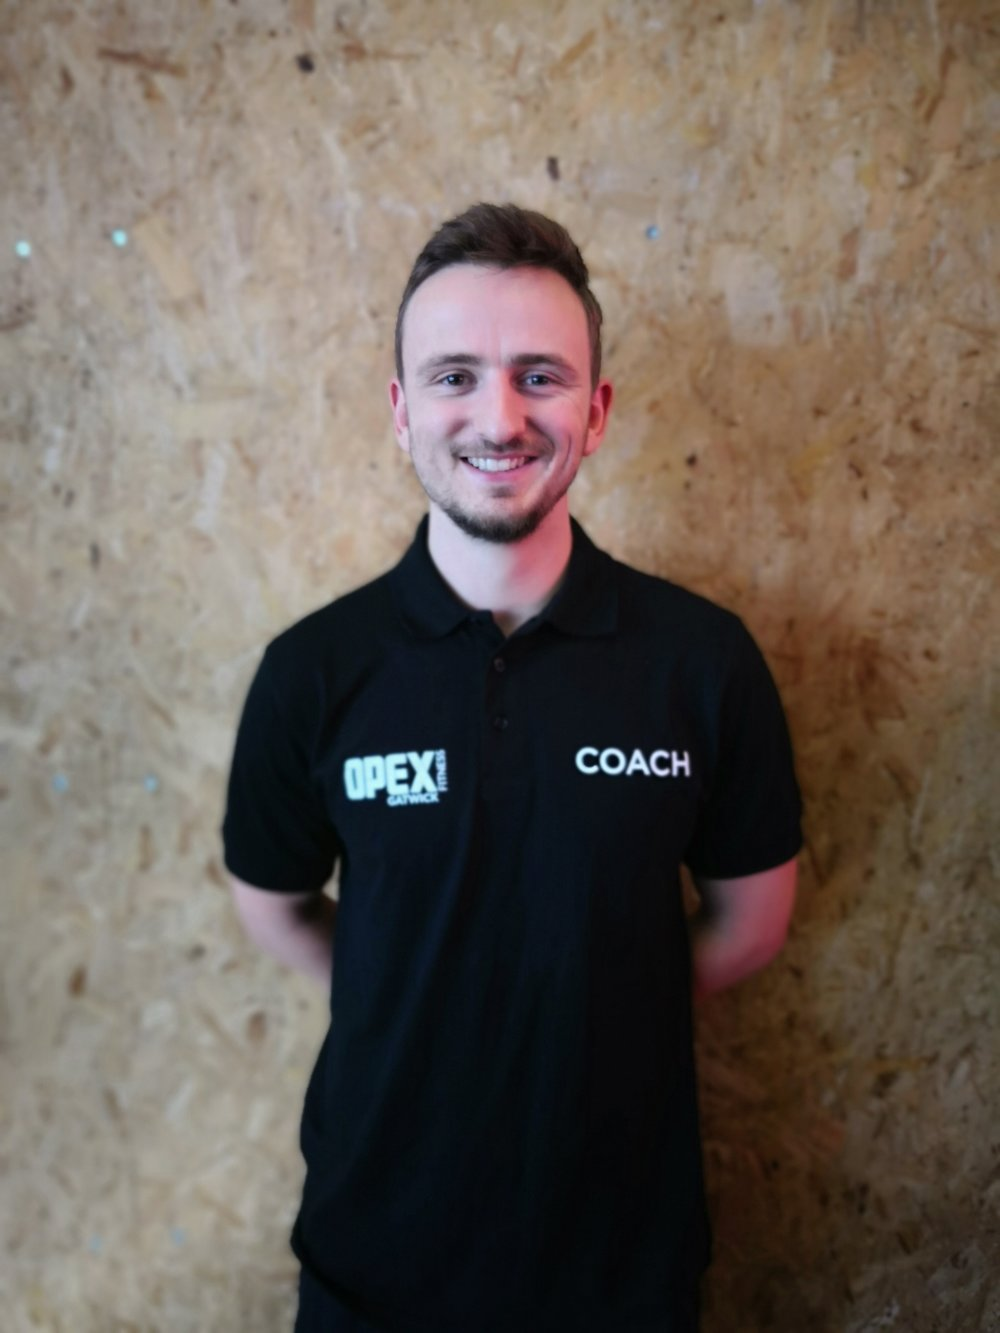 Meet Rob - Coach |  Personal Trainer . Game of Thrones addict, rides a motorbike, and will spend his lessons blaring out anything from Muse to Iron Maiden.